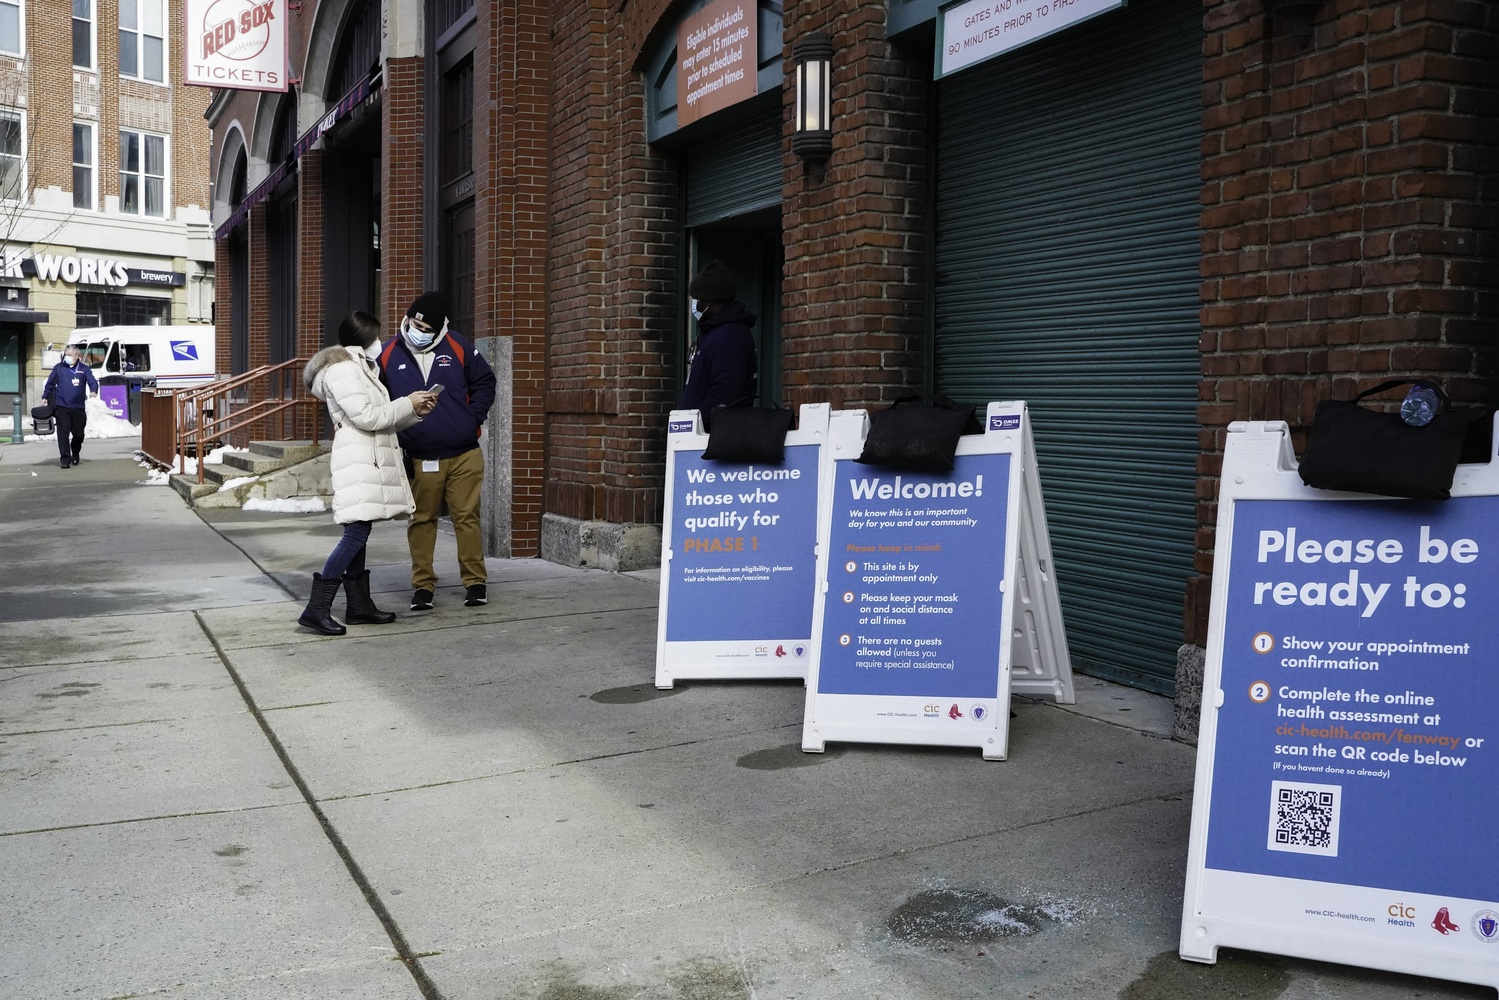 The City of Cambridge does not have its own public vaccination site, but the state's second largest vaccination site opened Feb. 1just across the Charles River at Fenway Park in Boston.